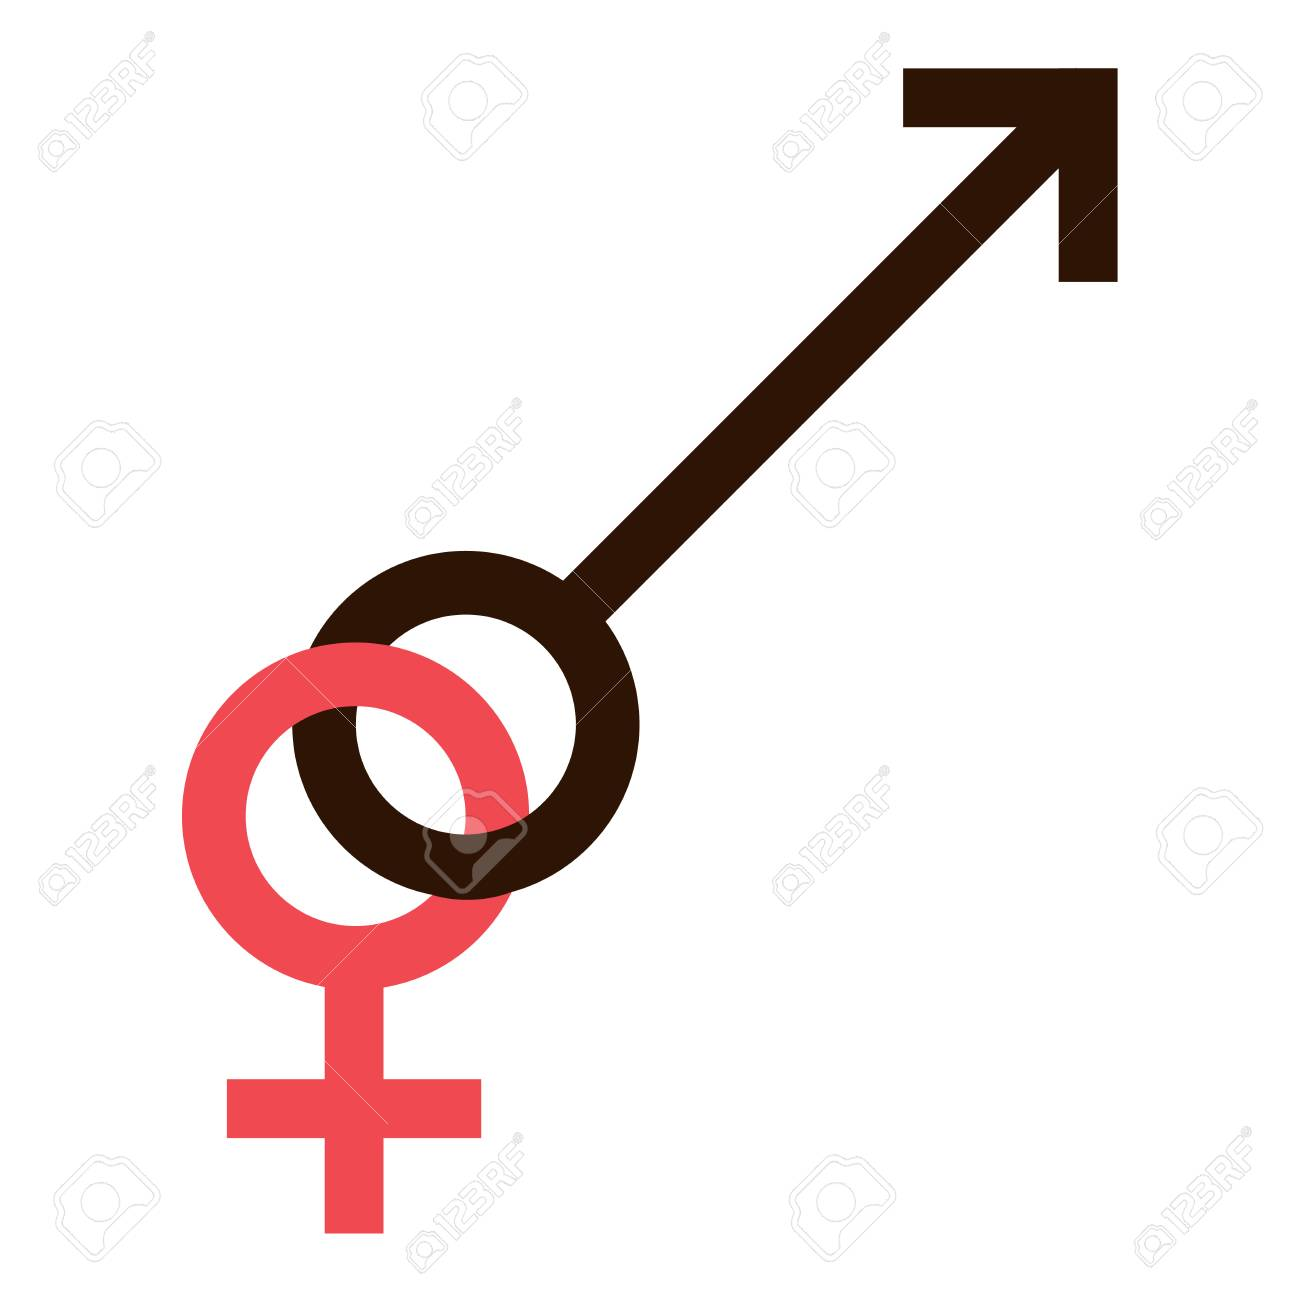 Sex Symbol Gender Man And Woman Interracial Connected Symbol